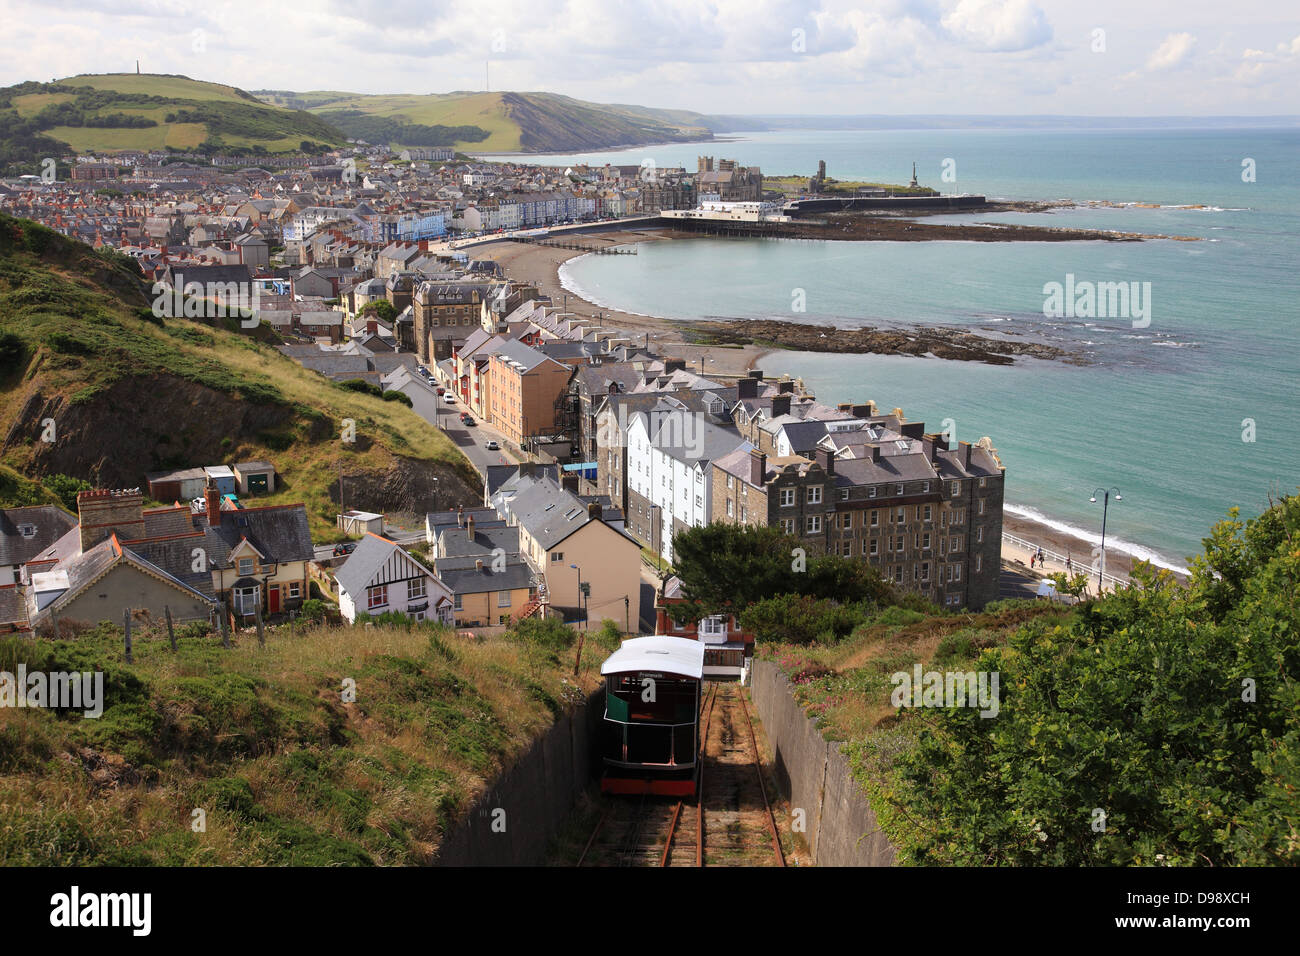 View of Aberystwyth beach, bay and promenade from Constitution Hill, its funicular railway in the foreground - Stock Image